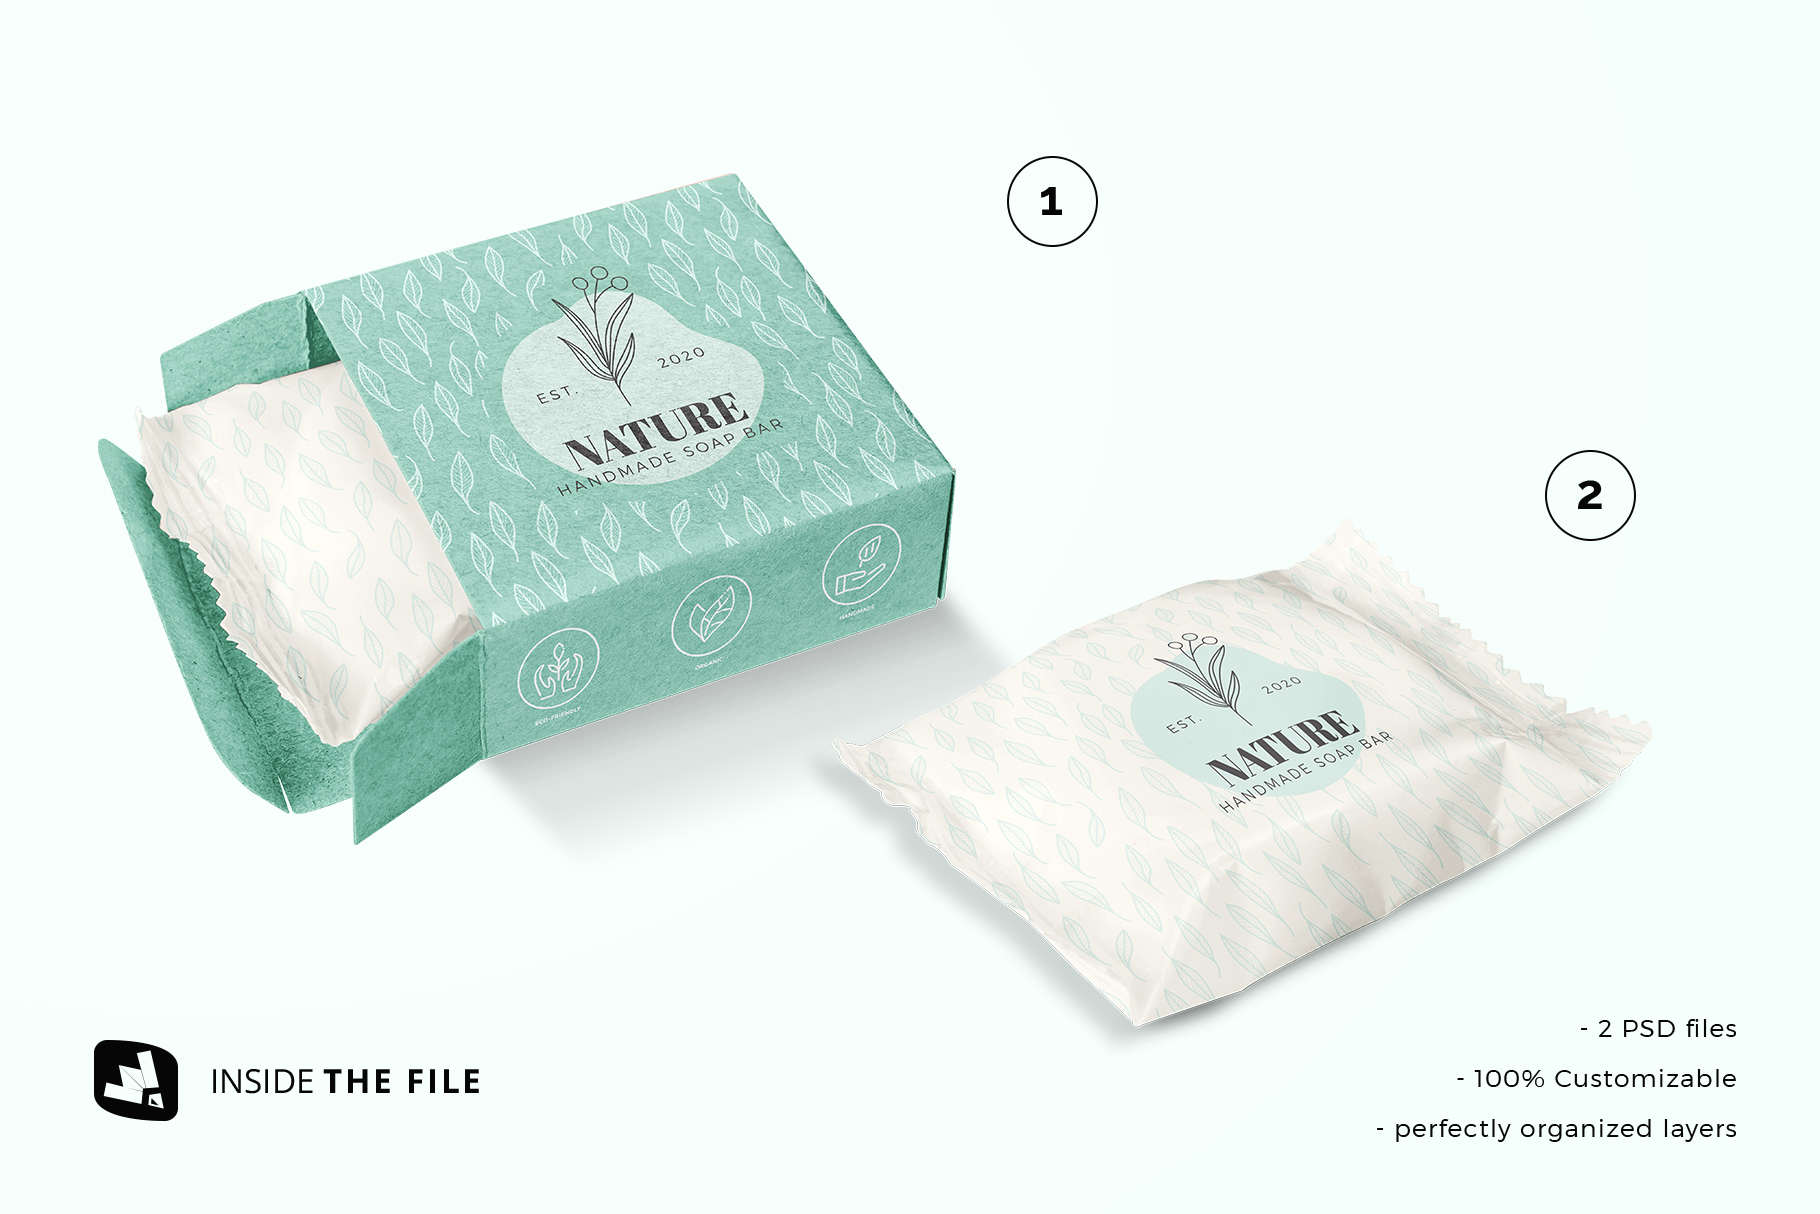 files included in the hand made soap bar packaging mockup